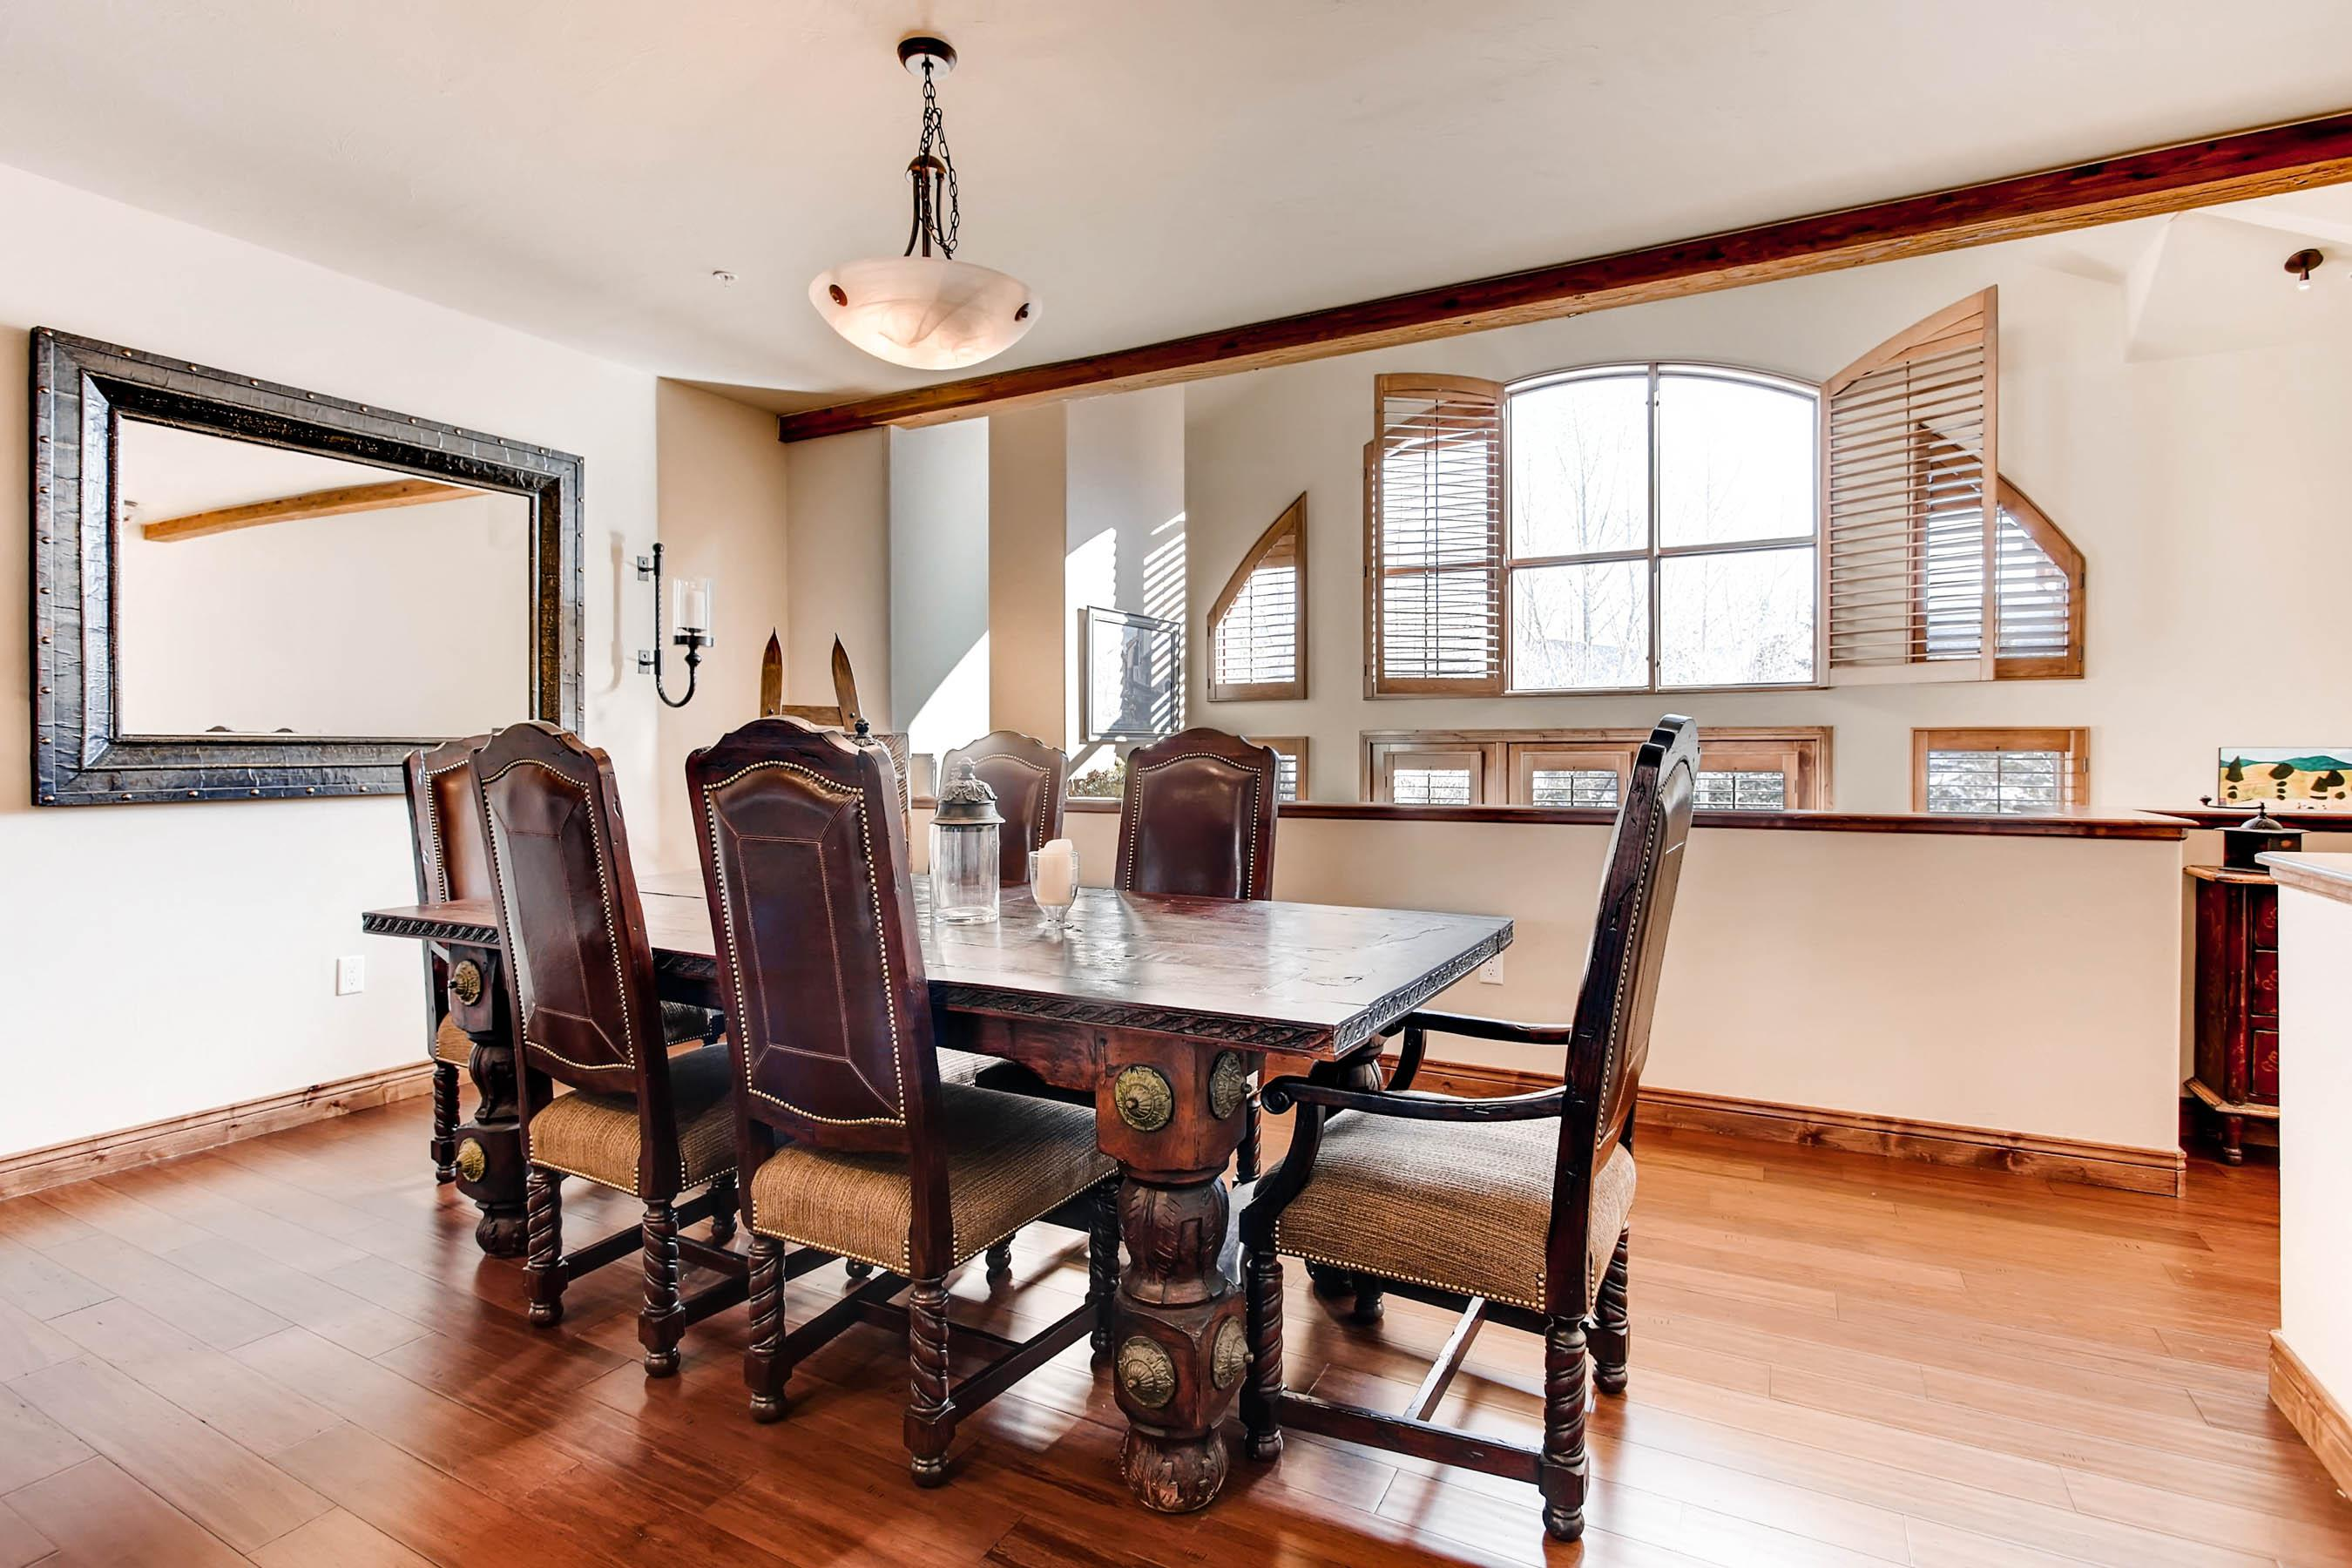 Next to the kitchen, a dining area offers a solid wood 6-person table perfect for meals and good conversation